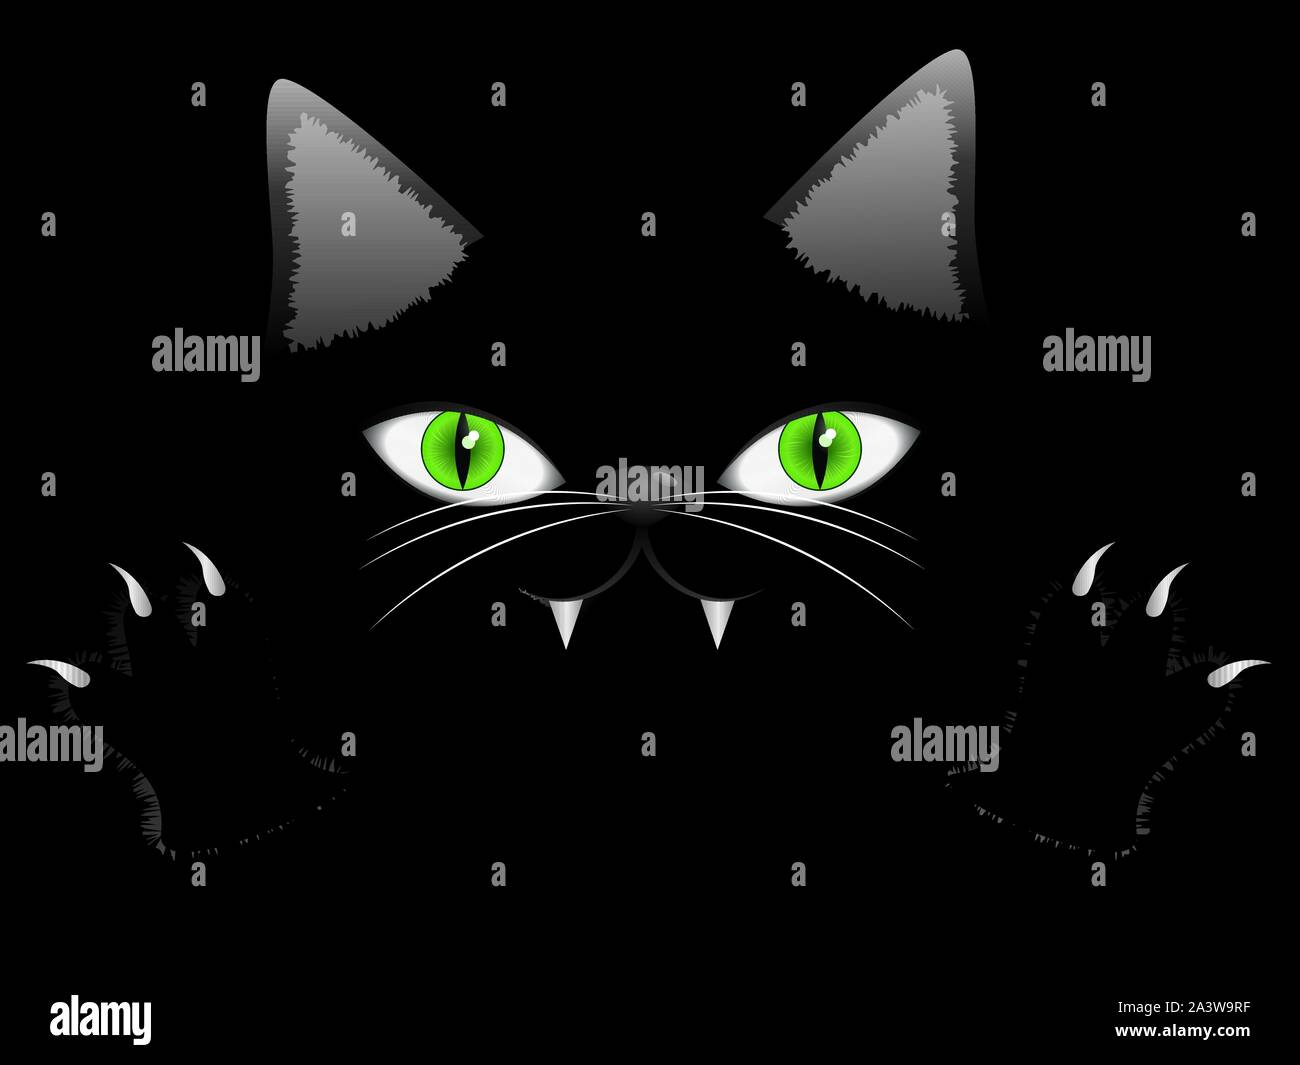 Cartoon Halloween Cat Face With Green Eyes And Paws On Black Background Stock Vector Image Art Alamy